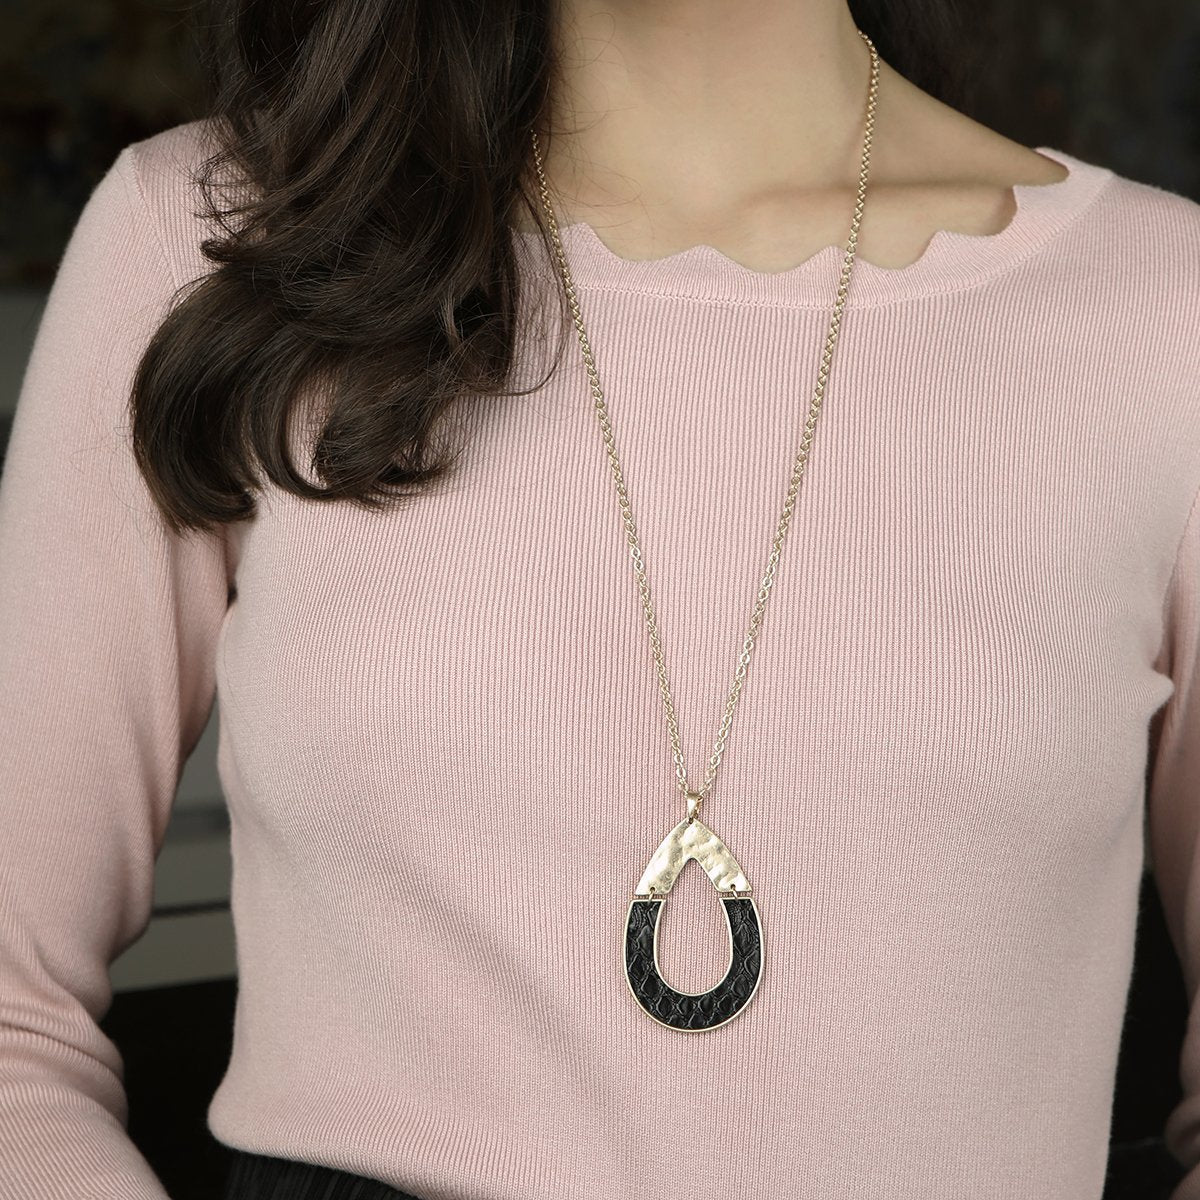 Harlow Pendant Necklace in Burgundy Leather